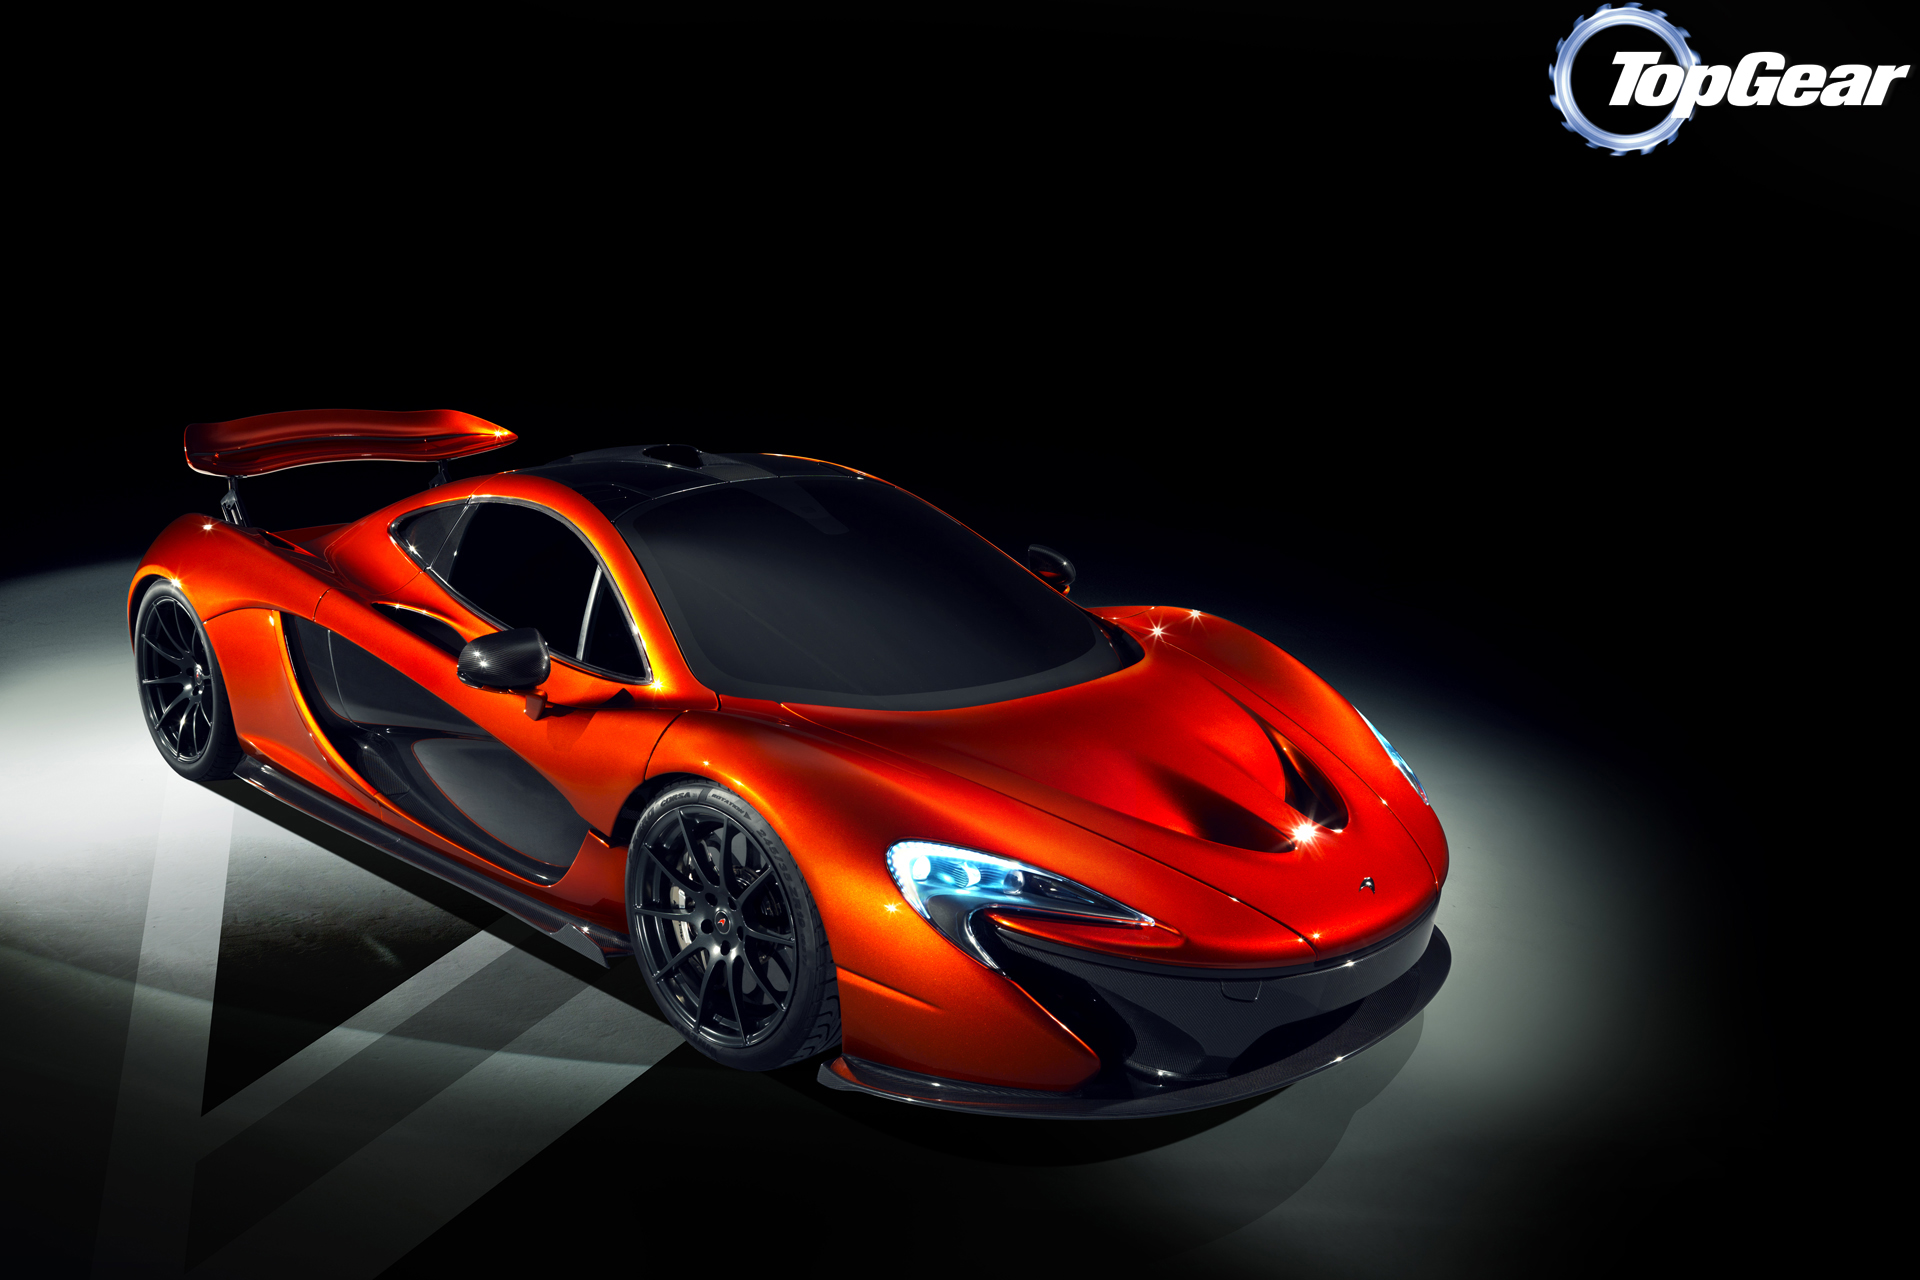 mclaren computer wallpapers desktop backgrounds